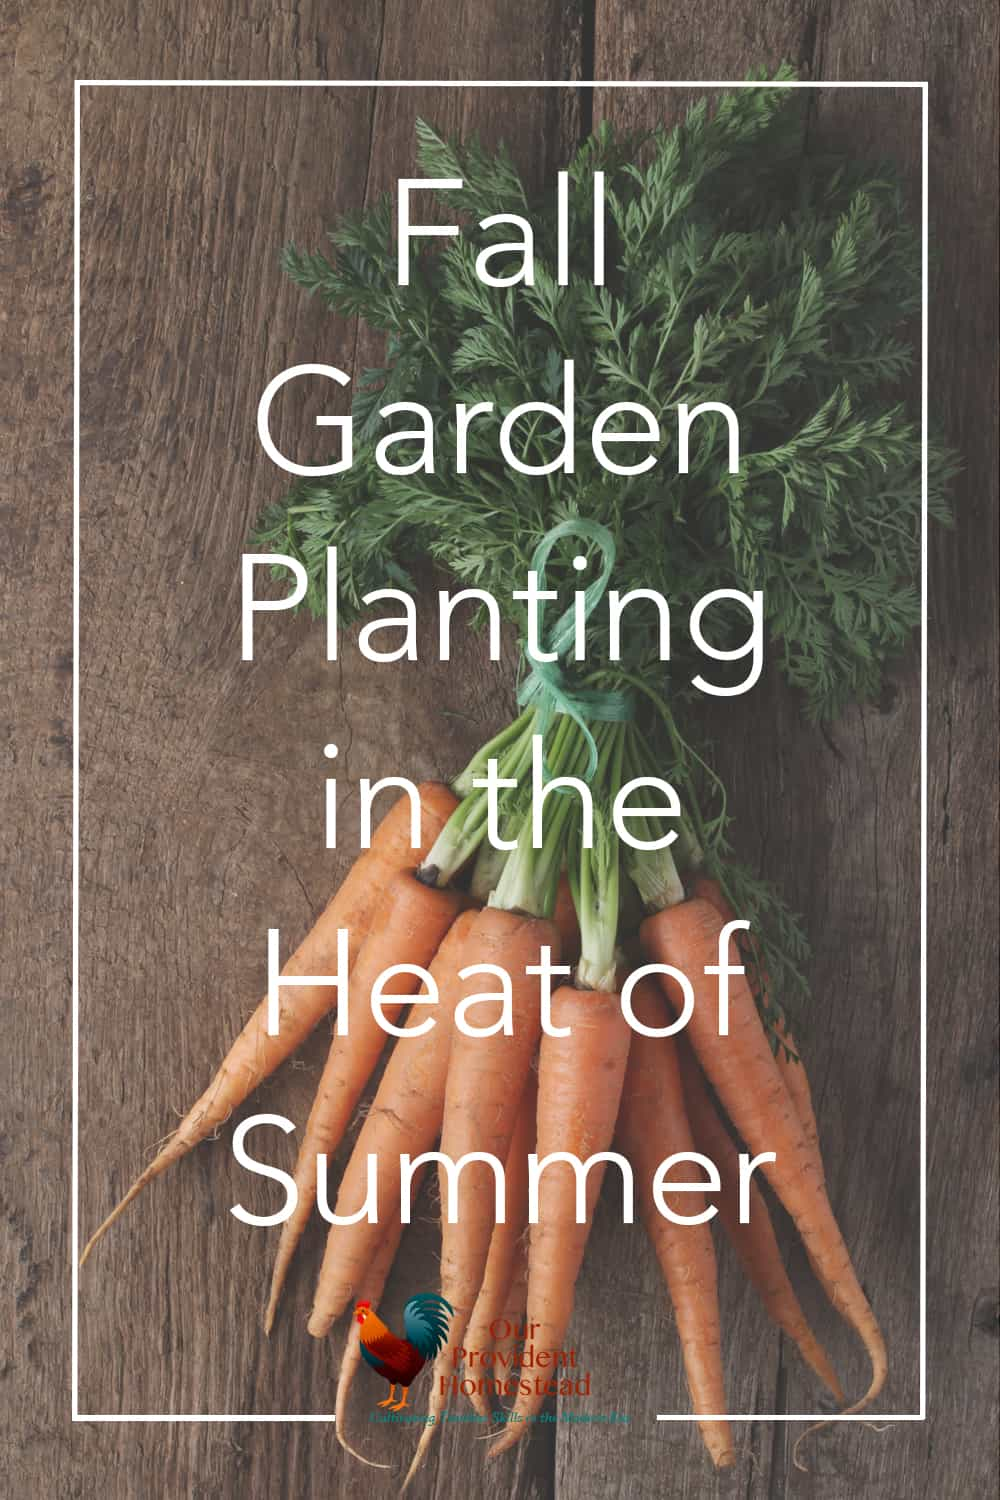 Do you love the harvest from your summer garden? Click here to see how you can extend the season with a fall garden and enjoy even more produce. #fallgarden #gardening #gardenideas #harvest #beginnergardening